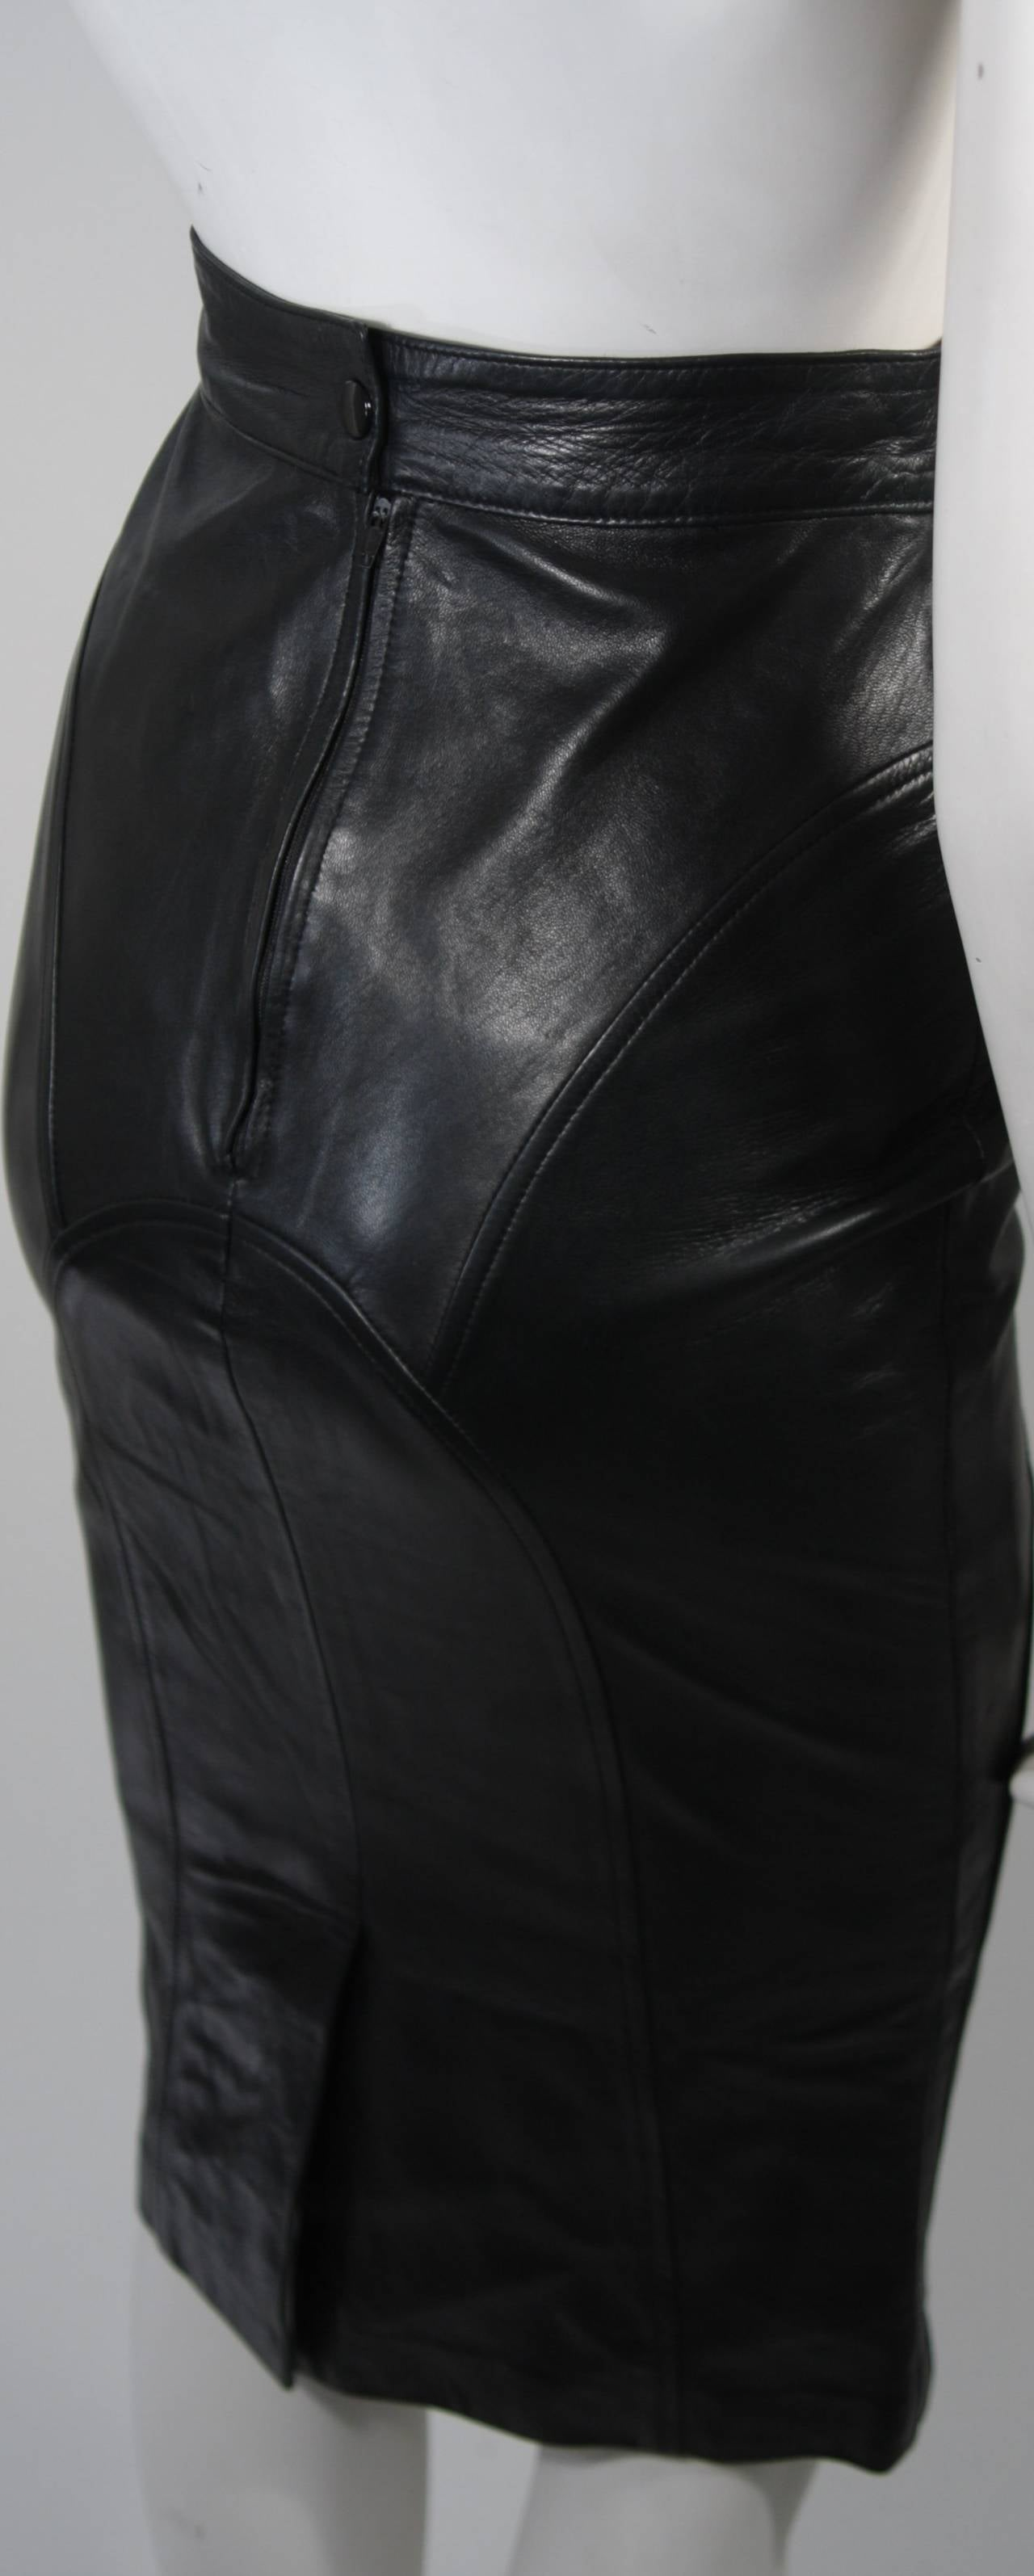 Jean Claude Jitrois Black Leather Skirt Size Extra Small 6